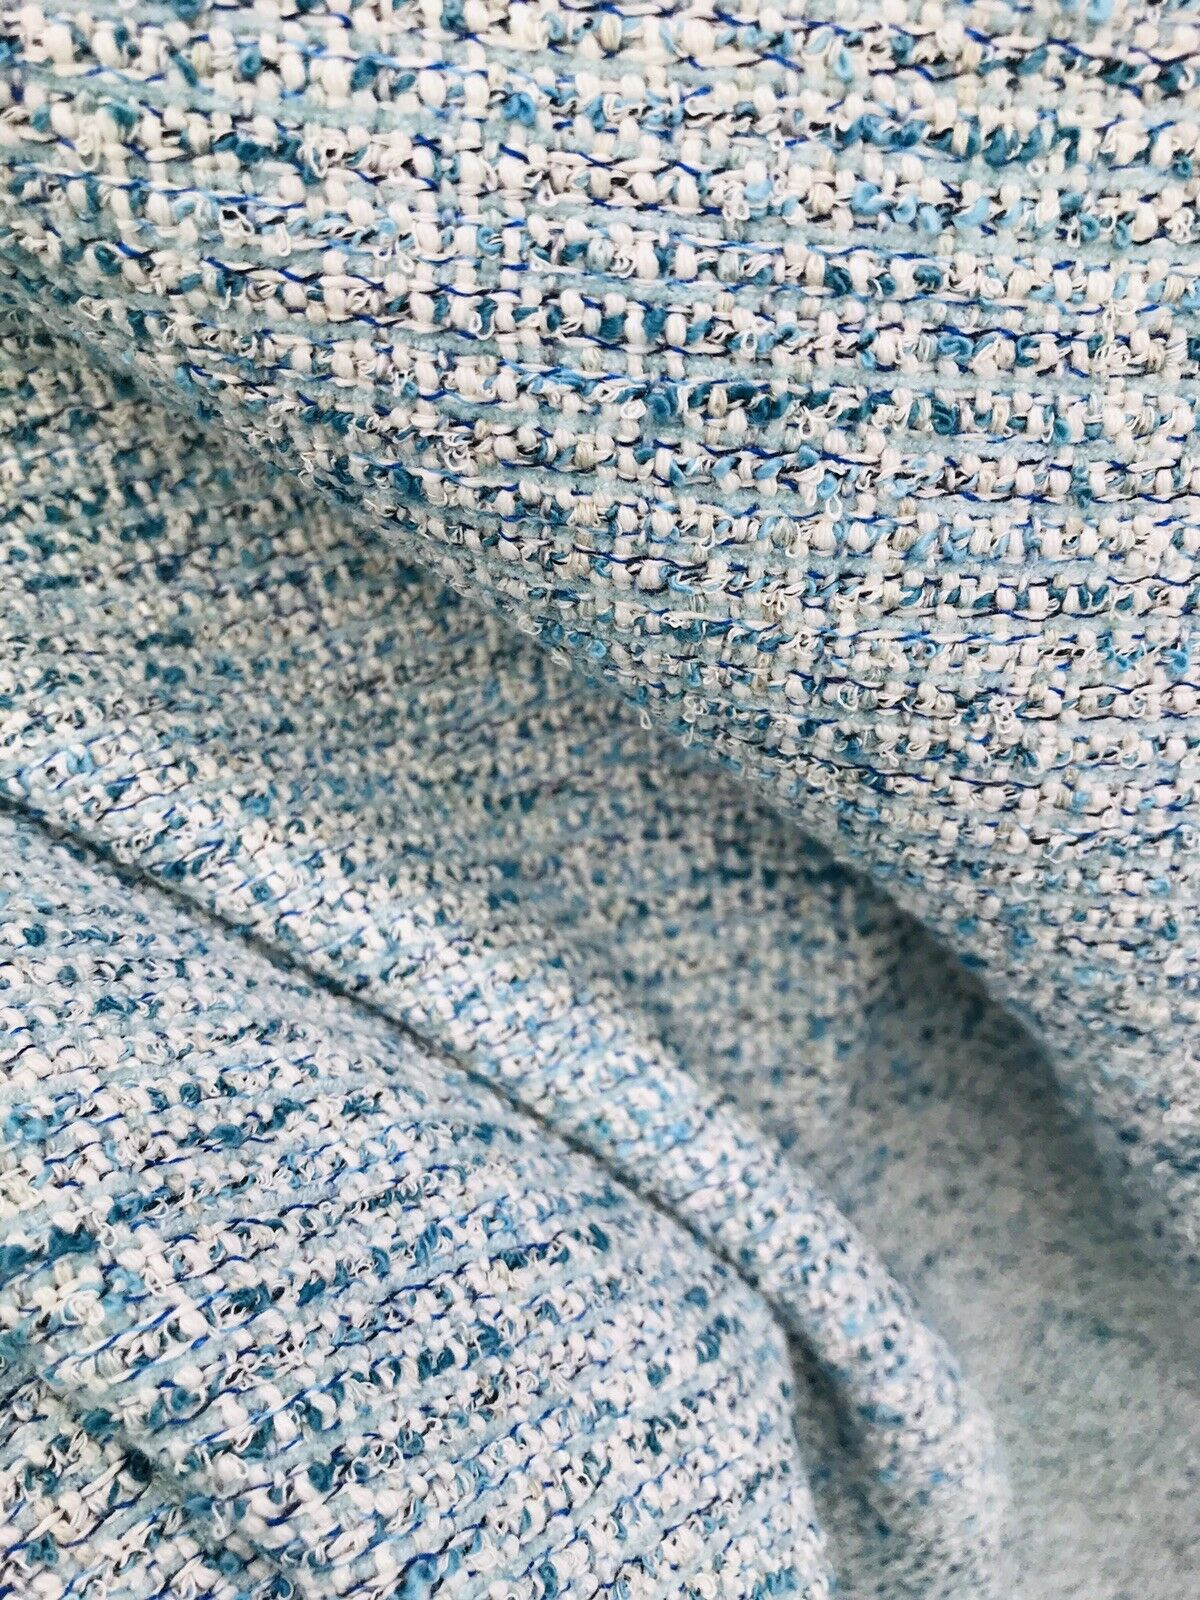 Back In Stock! Designer Upholstery Heavyweight Tweed Fabric- Aqua Blue- Sold By The Yard